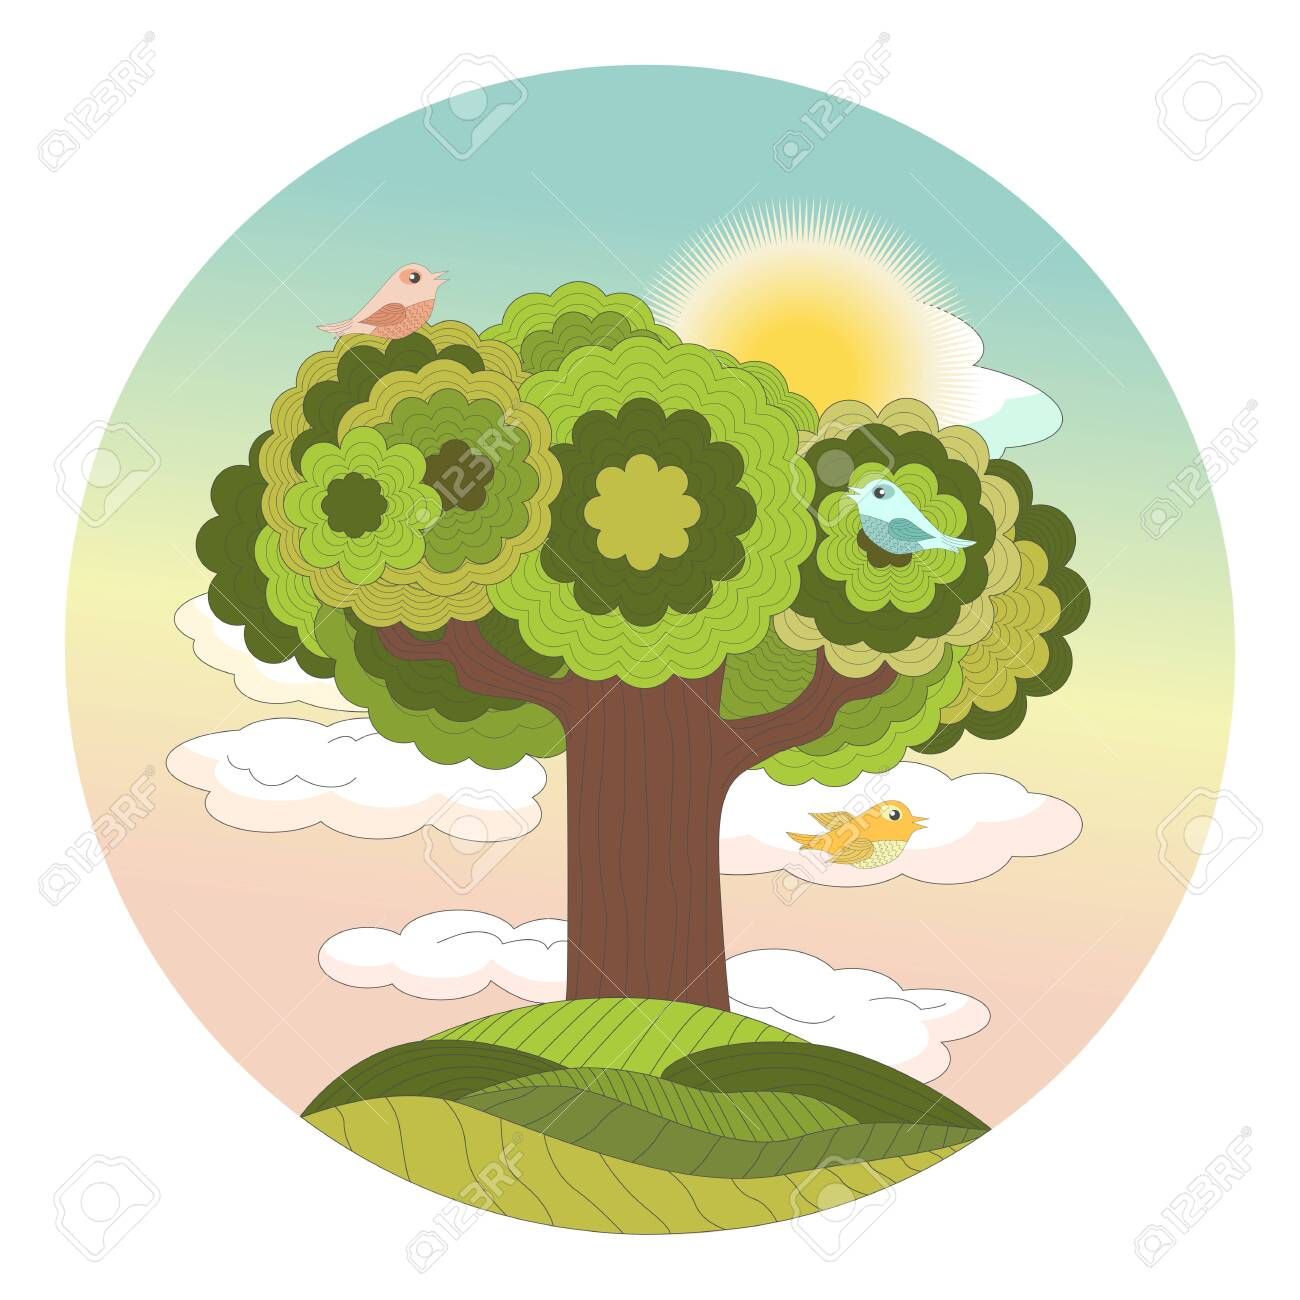 Sunrise Dawn In The Forest Above A Tree On A Hill With Tweeting Royalty Free Cliparts Vectors And Stock Illustration Image 130599030 ✓ free for commercial use ✓ high quality images. sunrise dawn in the forest above a tree on a hill with tweeting